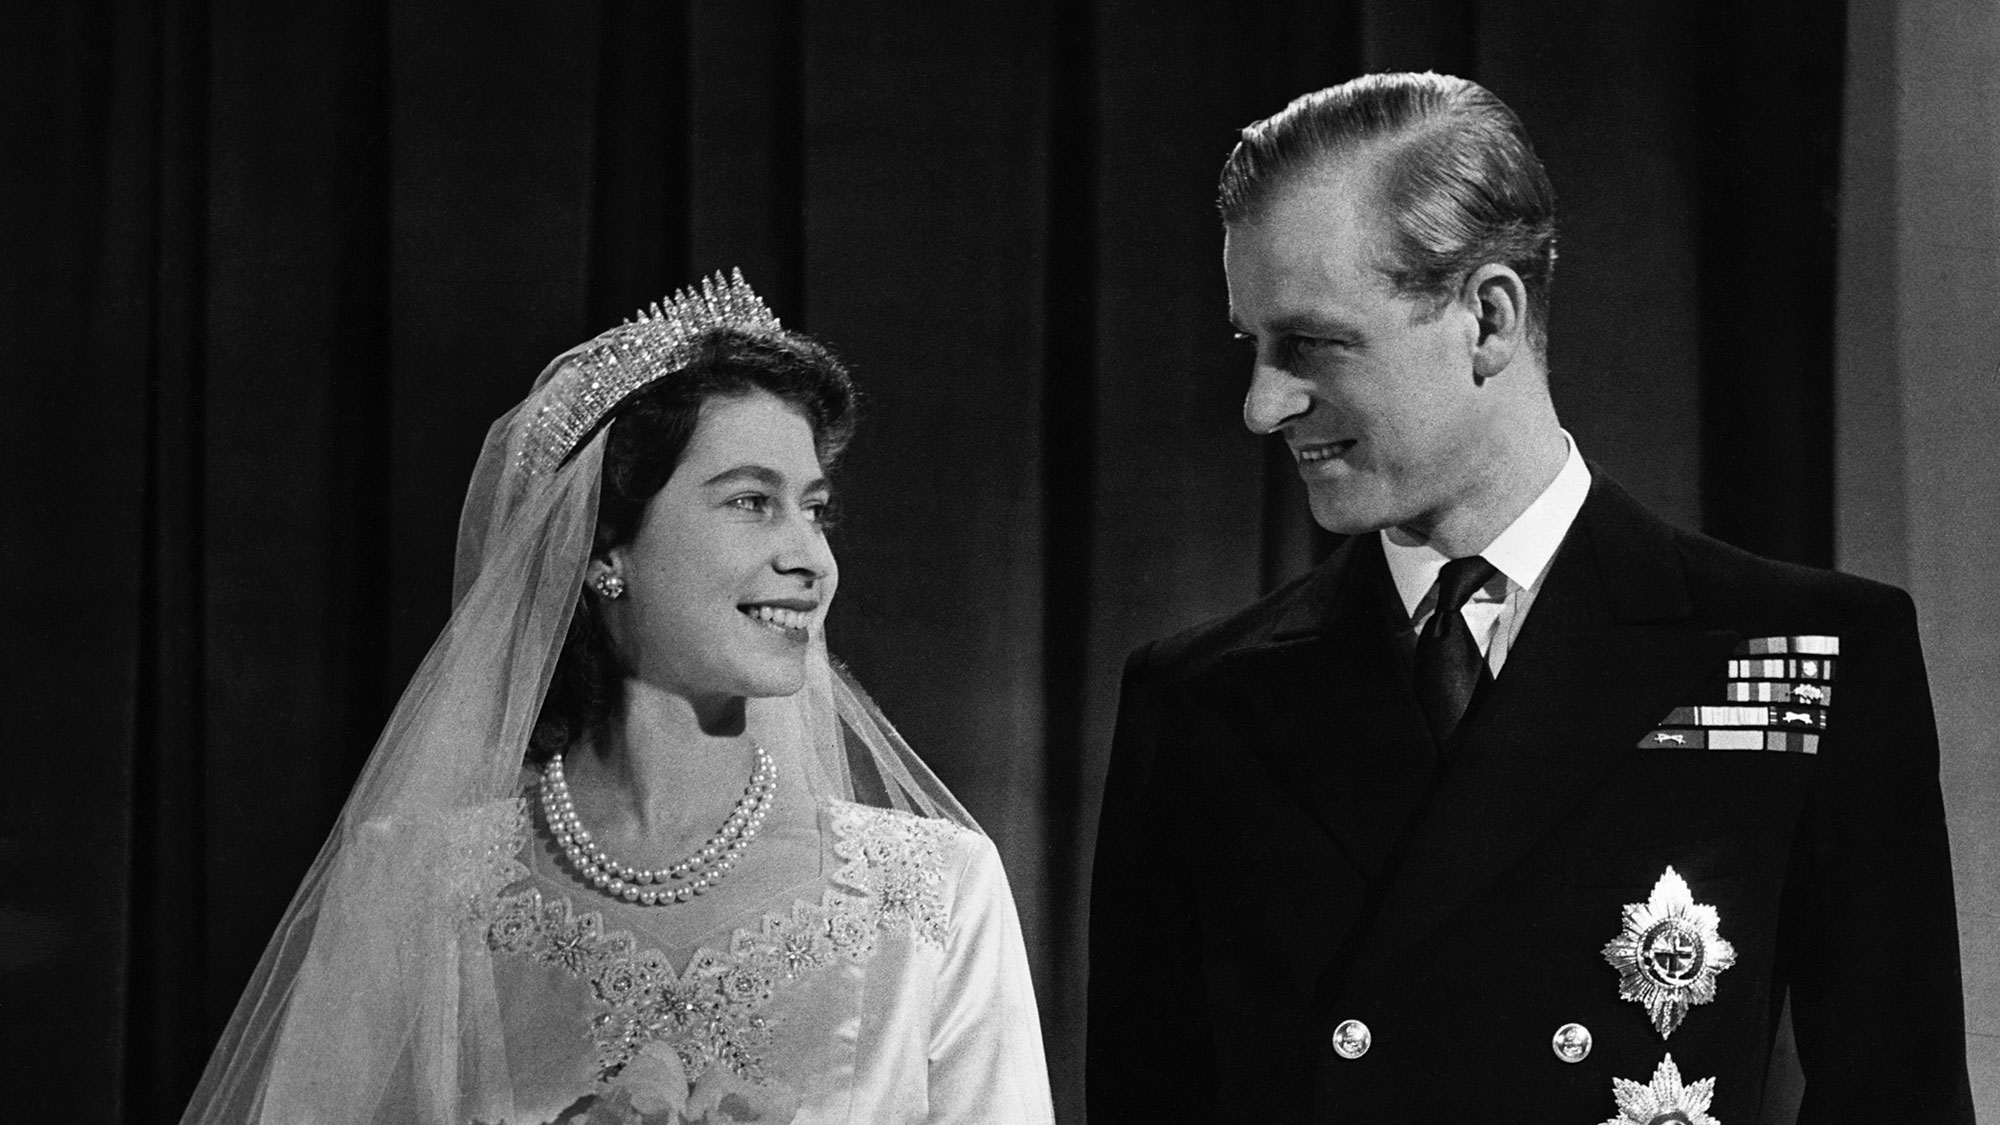 The Queen almost suffered a fashion fail on her wedding day